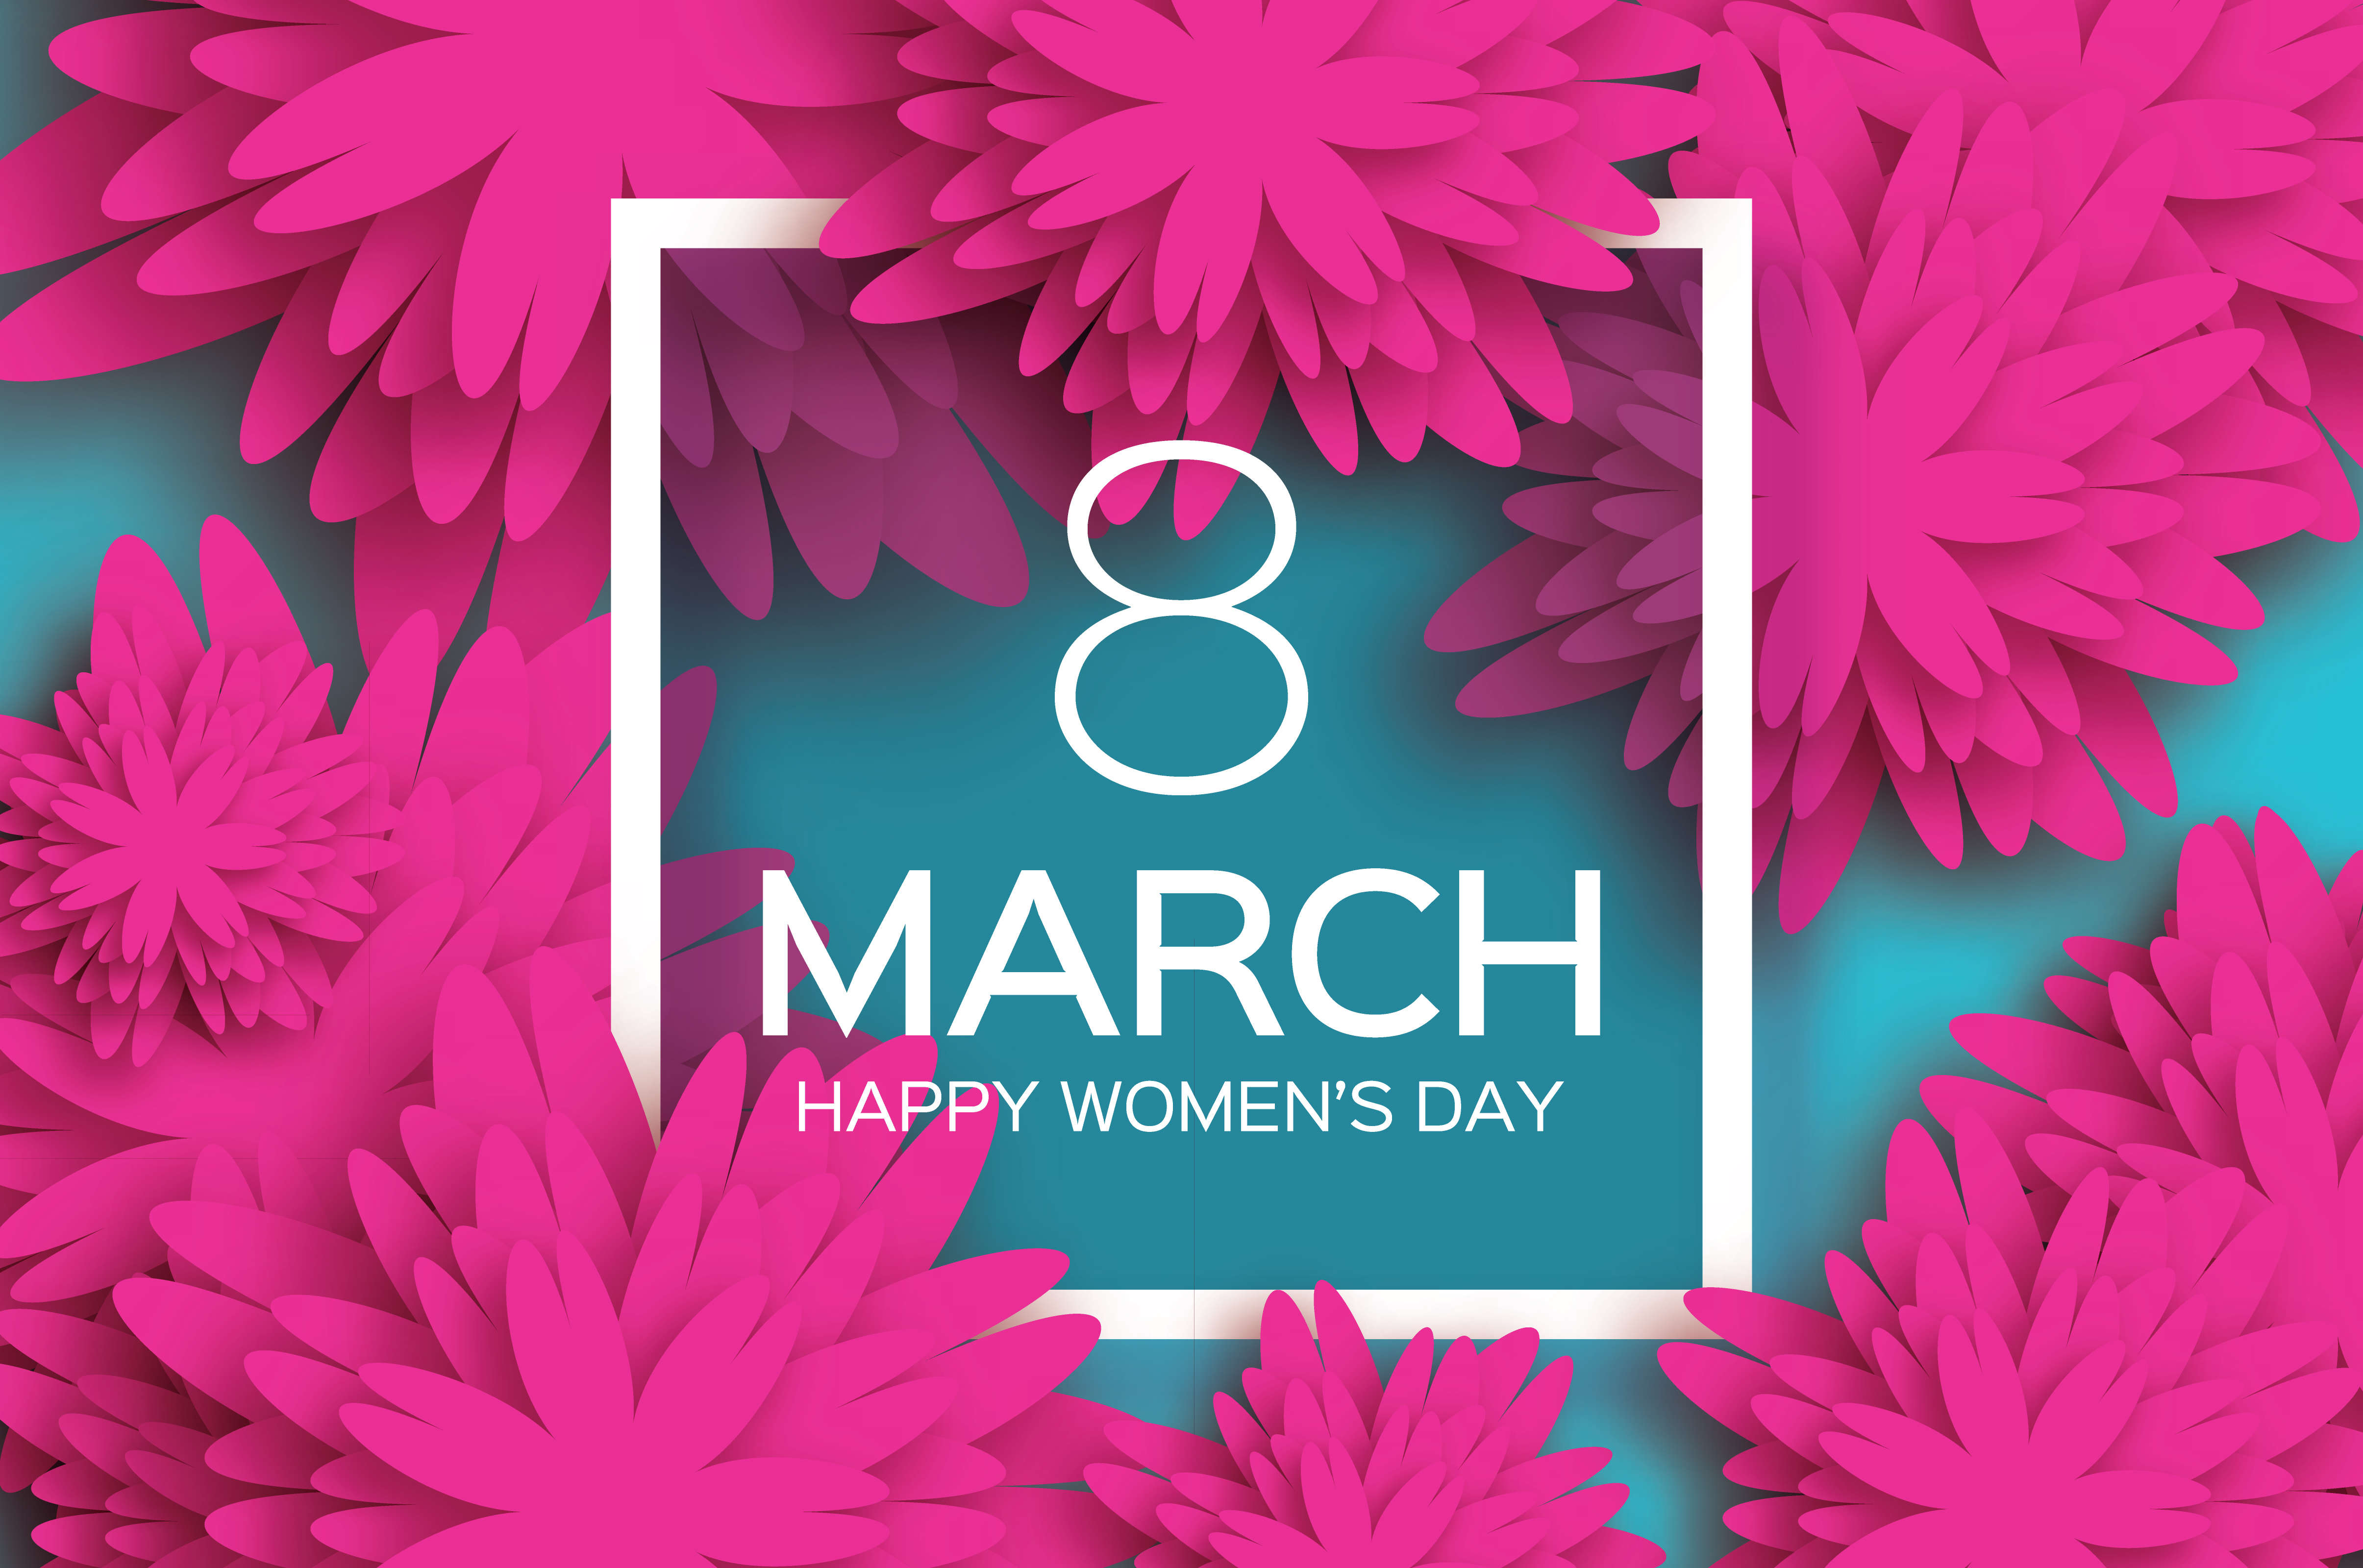 Happy Womens Day 2020 Images Messages Greetings Wishes 4821x3200